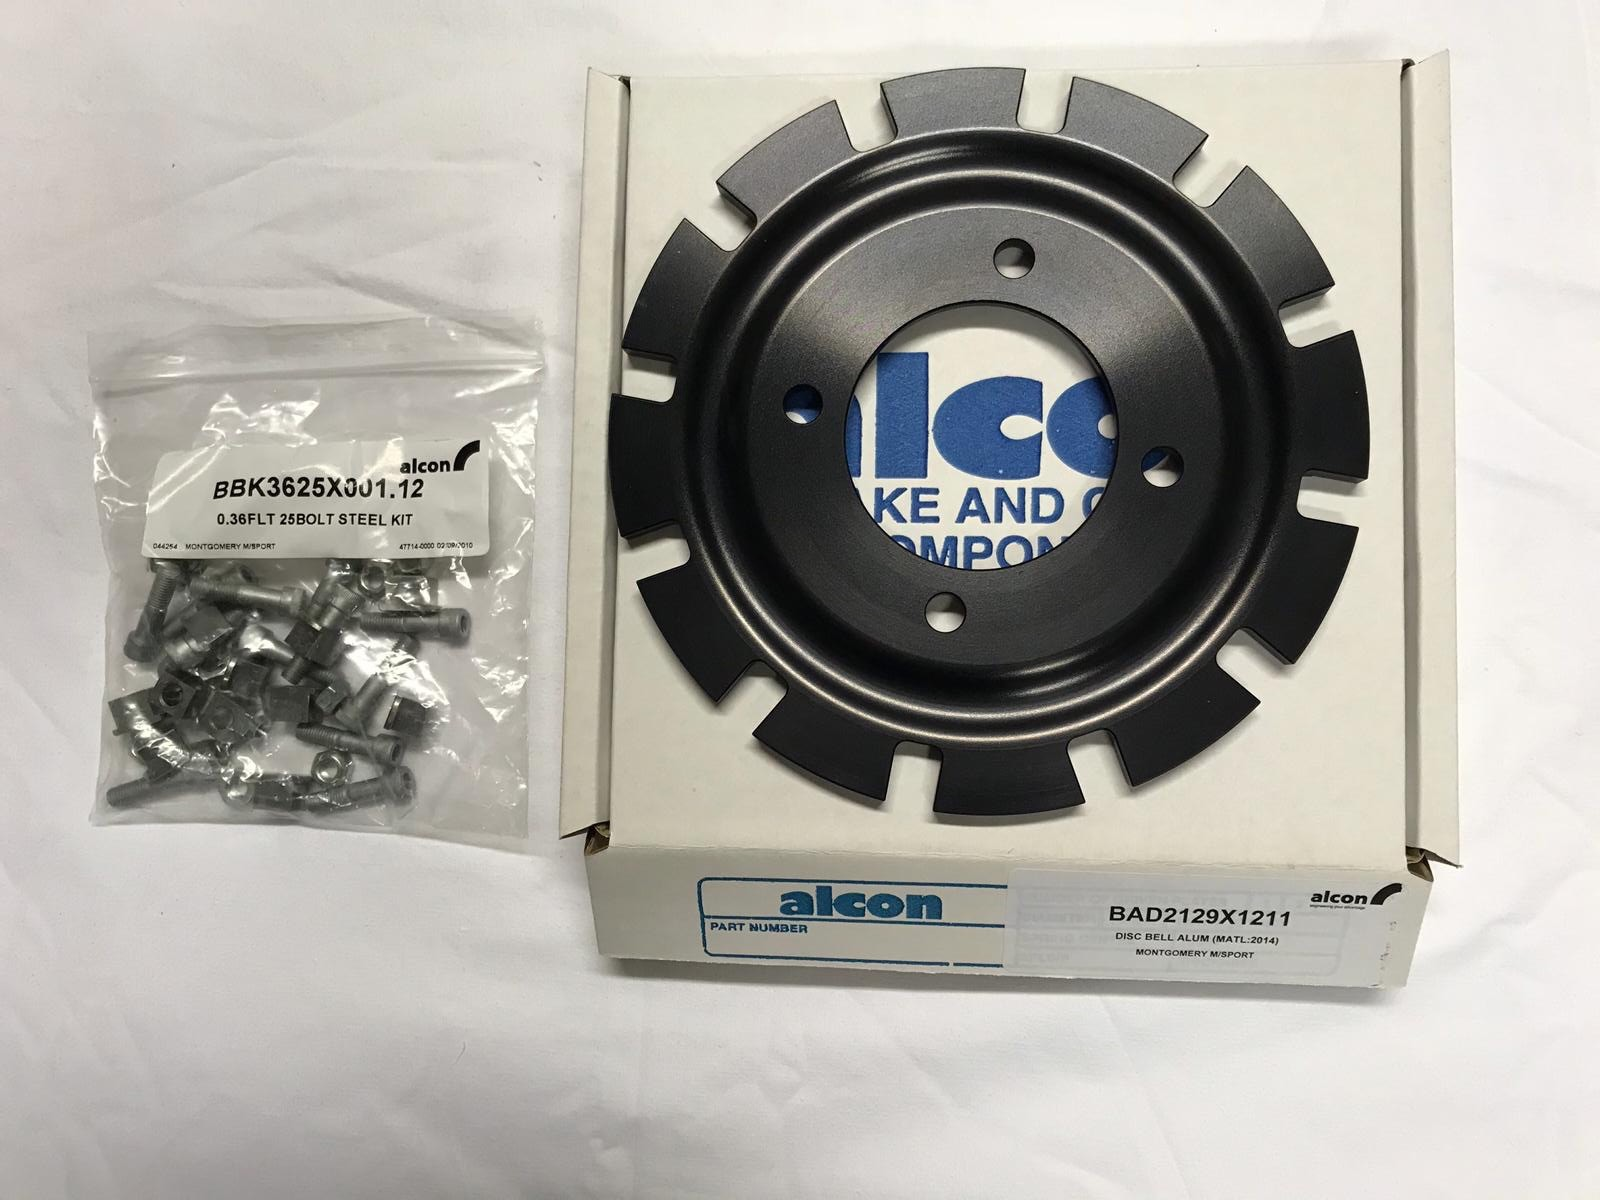 Alcon Mk 2 Escort floating disc bell kit